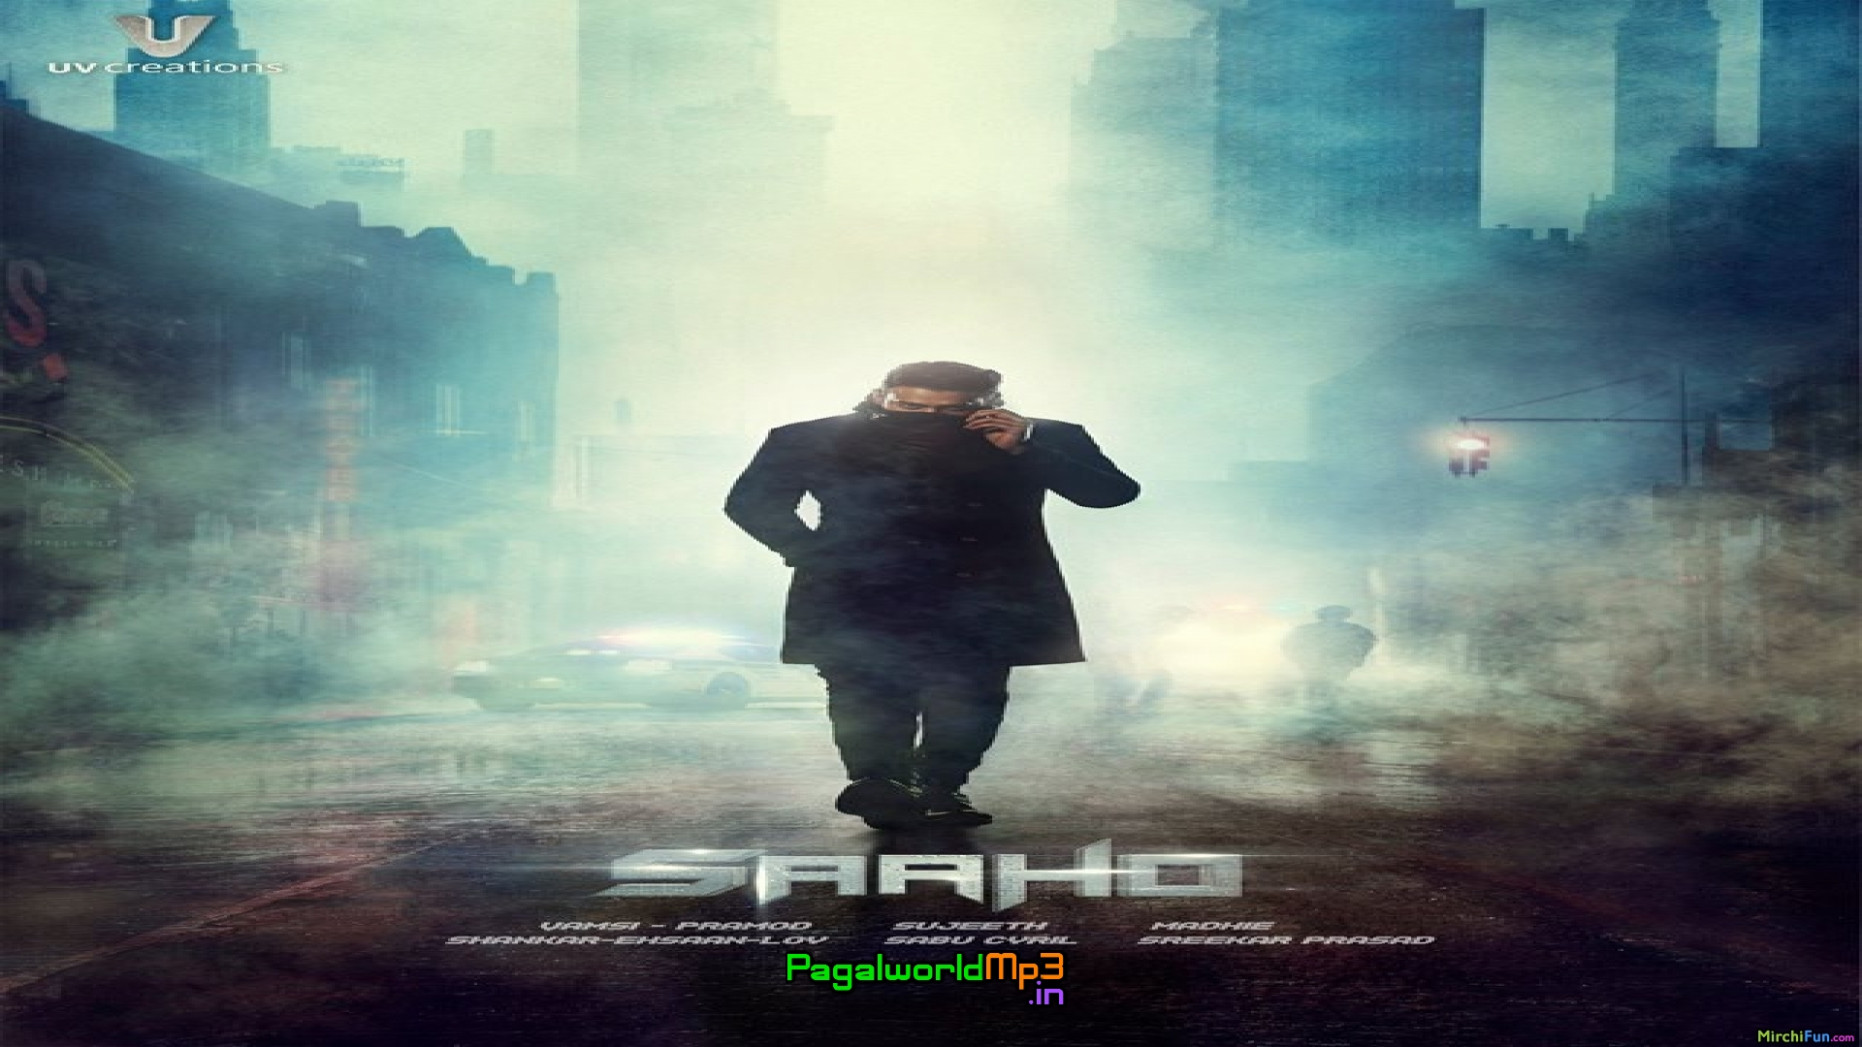 Saaho (2018) Video Songs PagalworldMp3 Bollywood MP3 2018 ...